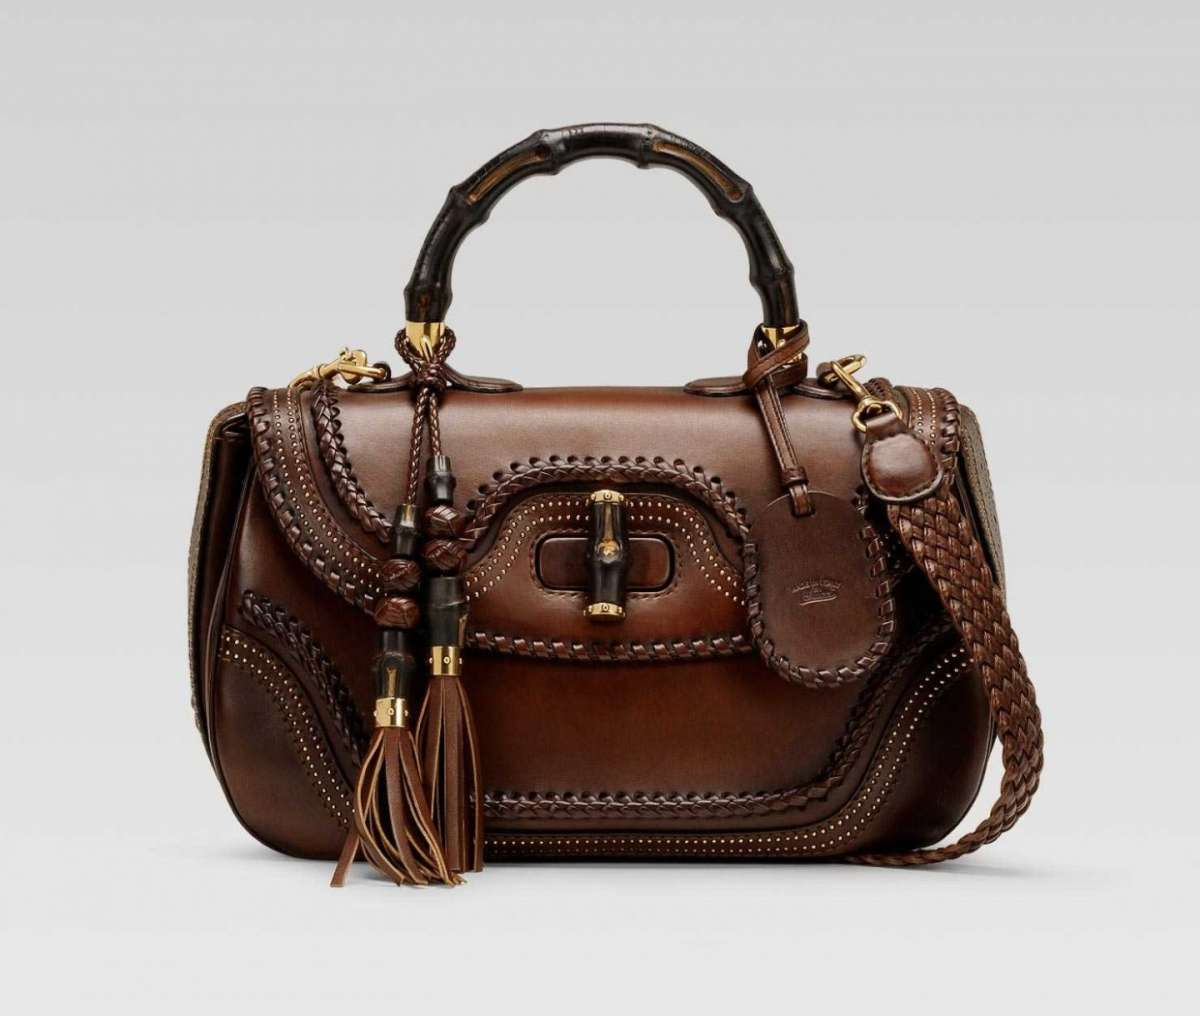 Handbag New Bamboo Gucci in pelle